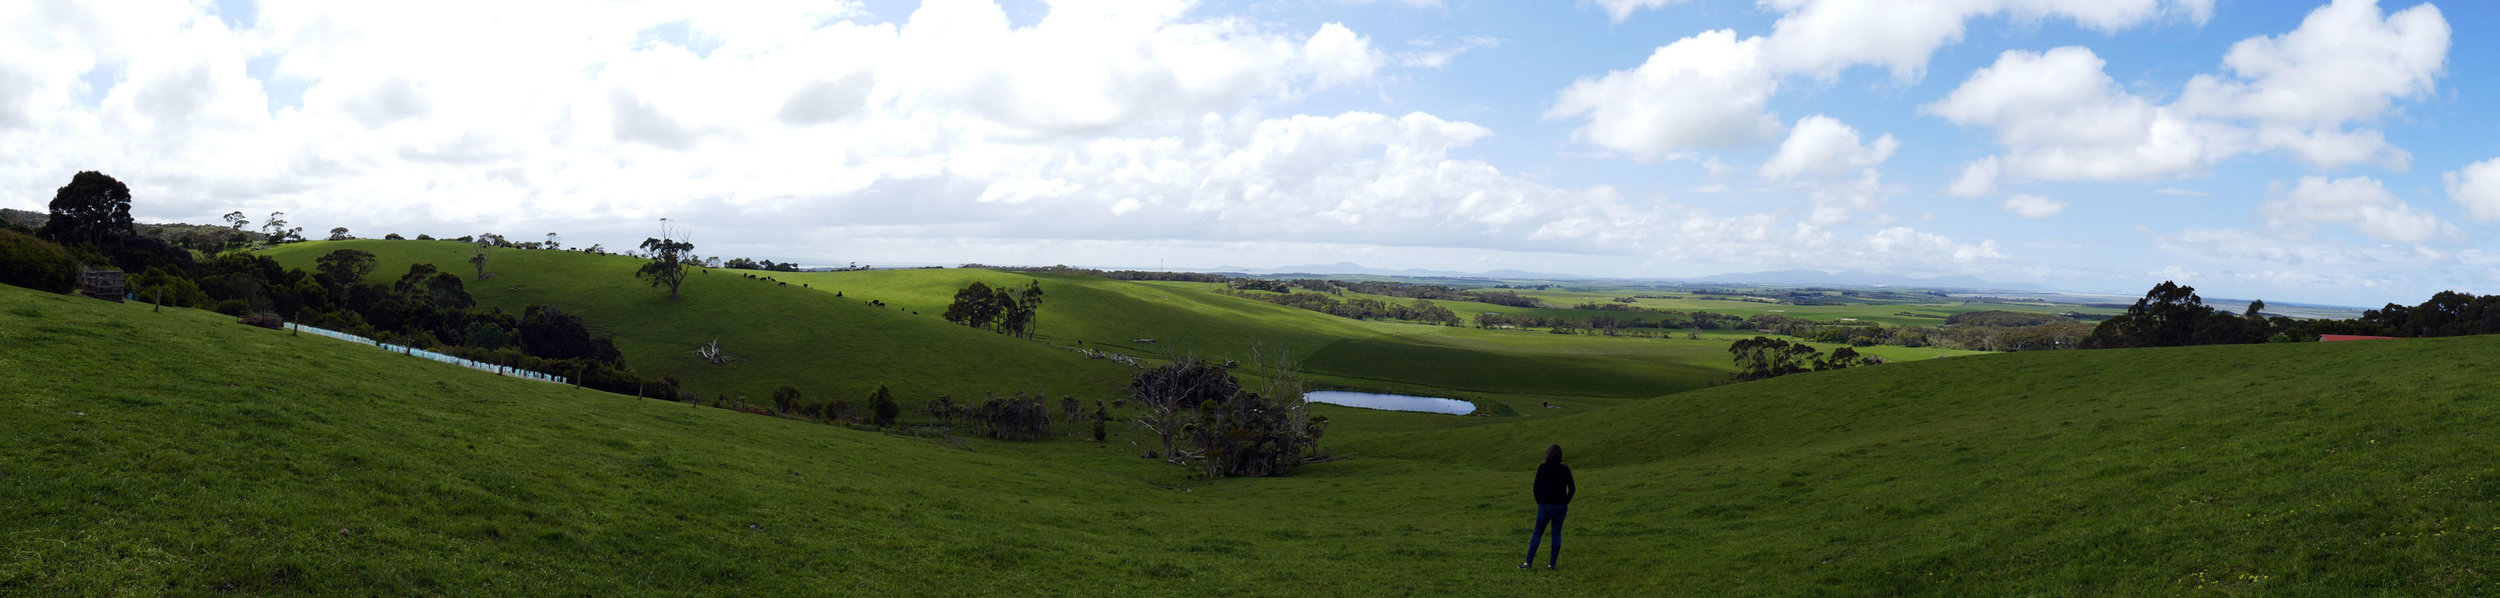 The same landscape panorama under a sudden scudding cloud's shadow, with client in the foreground.